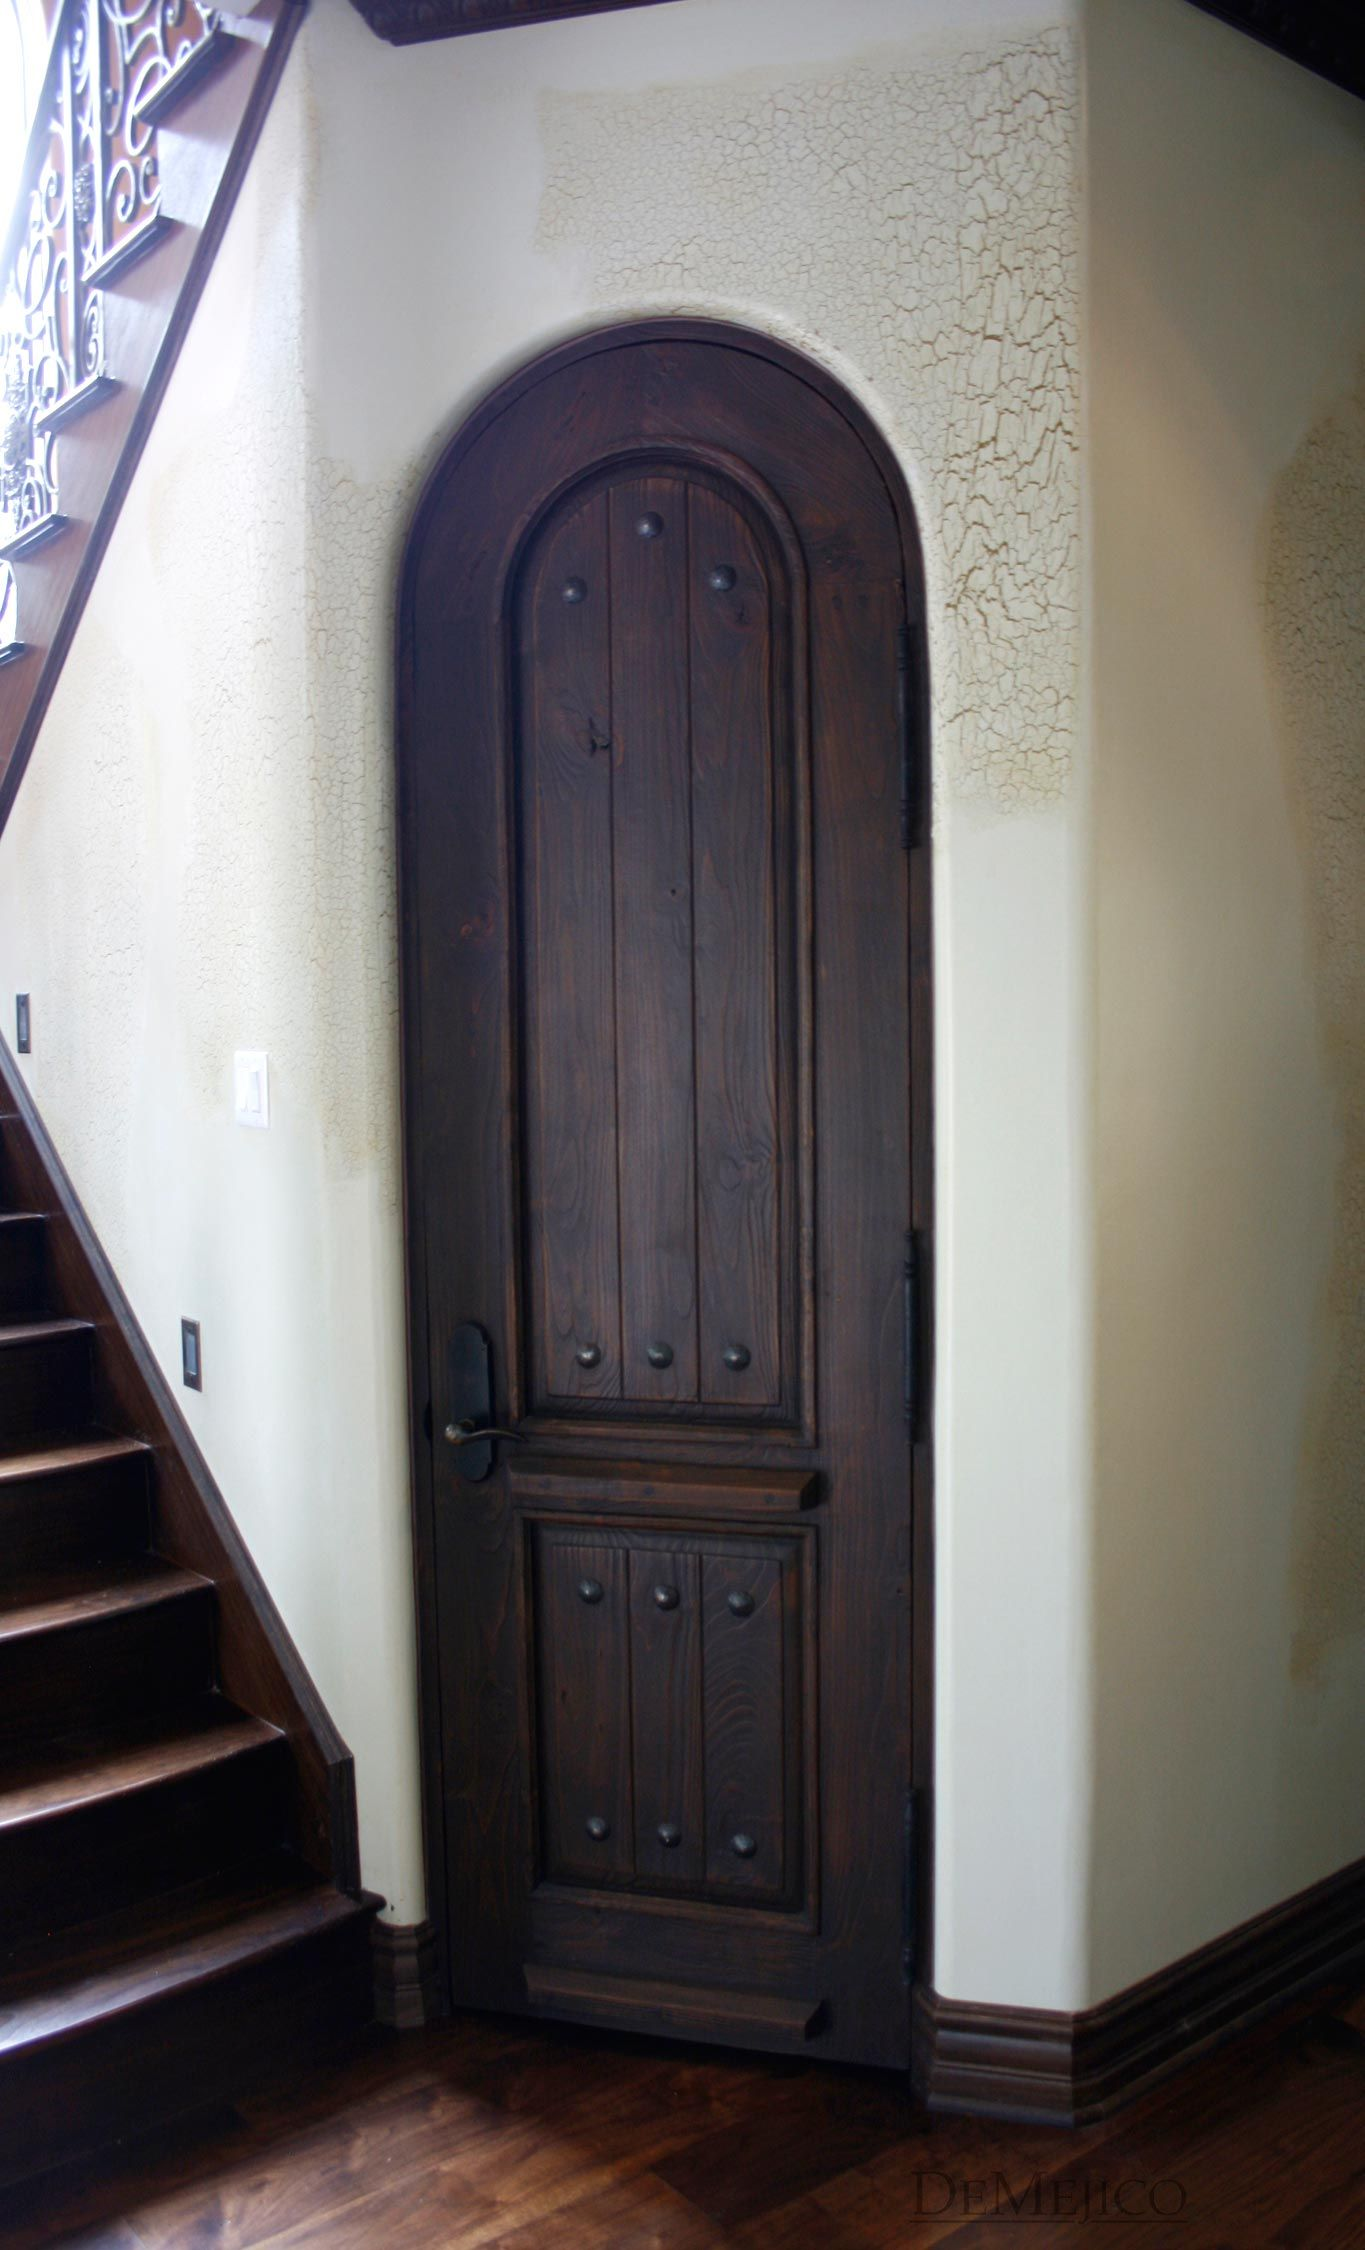 Spanish Accent Doors are perfect additions for a subtle Spanish touch. & Spanish Accent Doors are perfect additions for a subtle Spanish ... Pezcame.Com